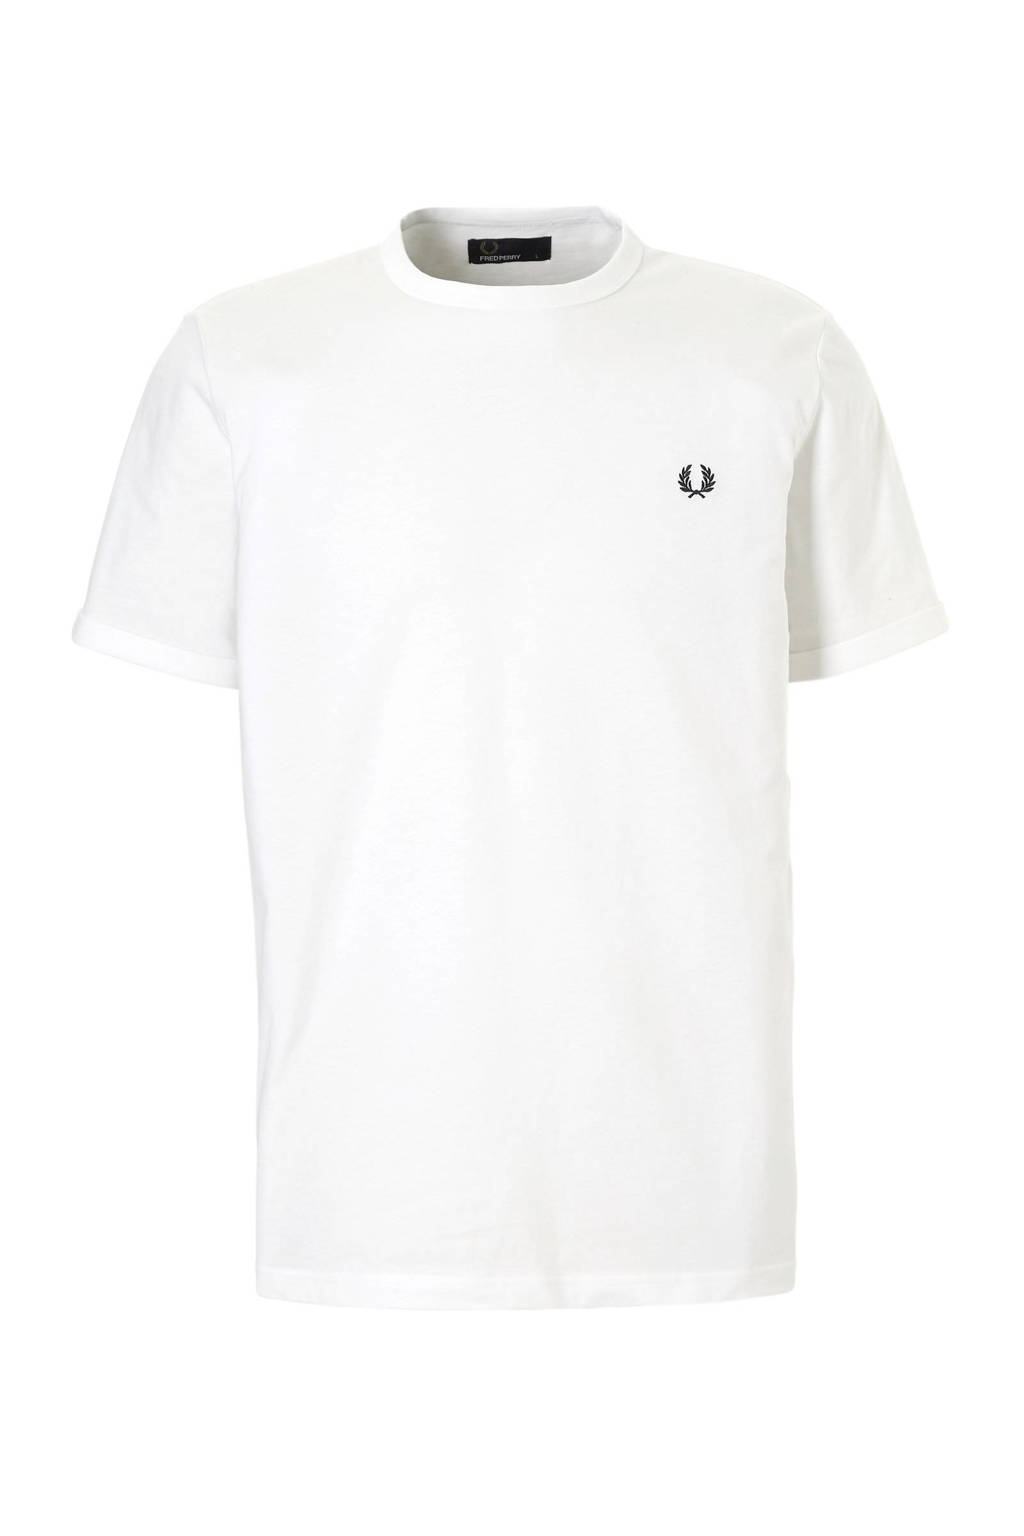 Fred Perry T-shirt wit, Wit